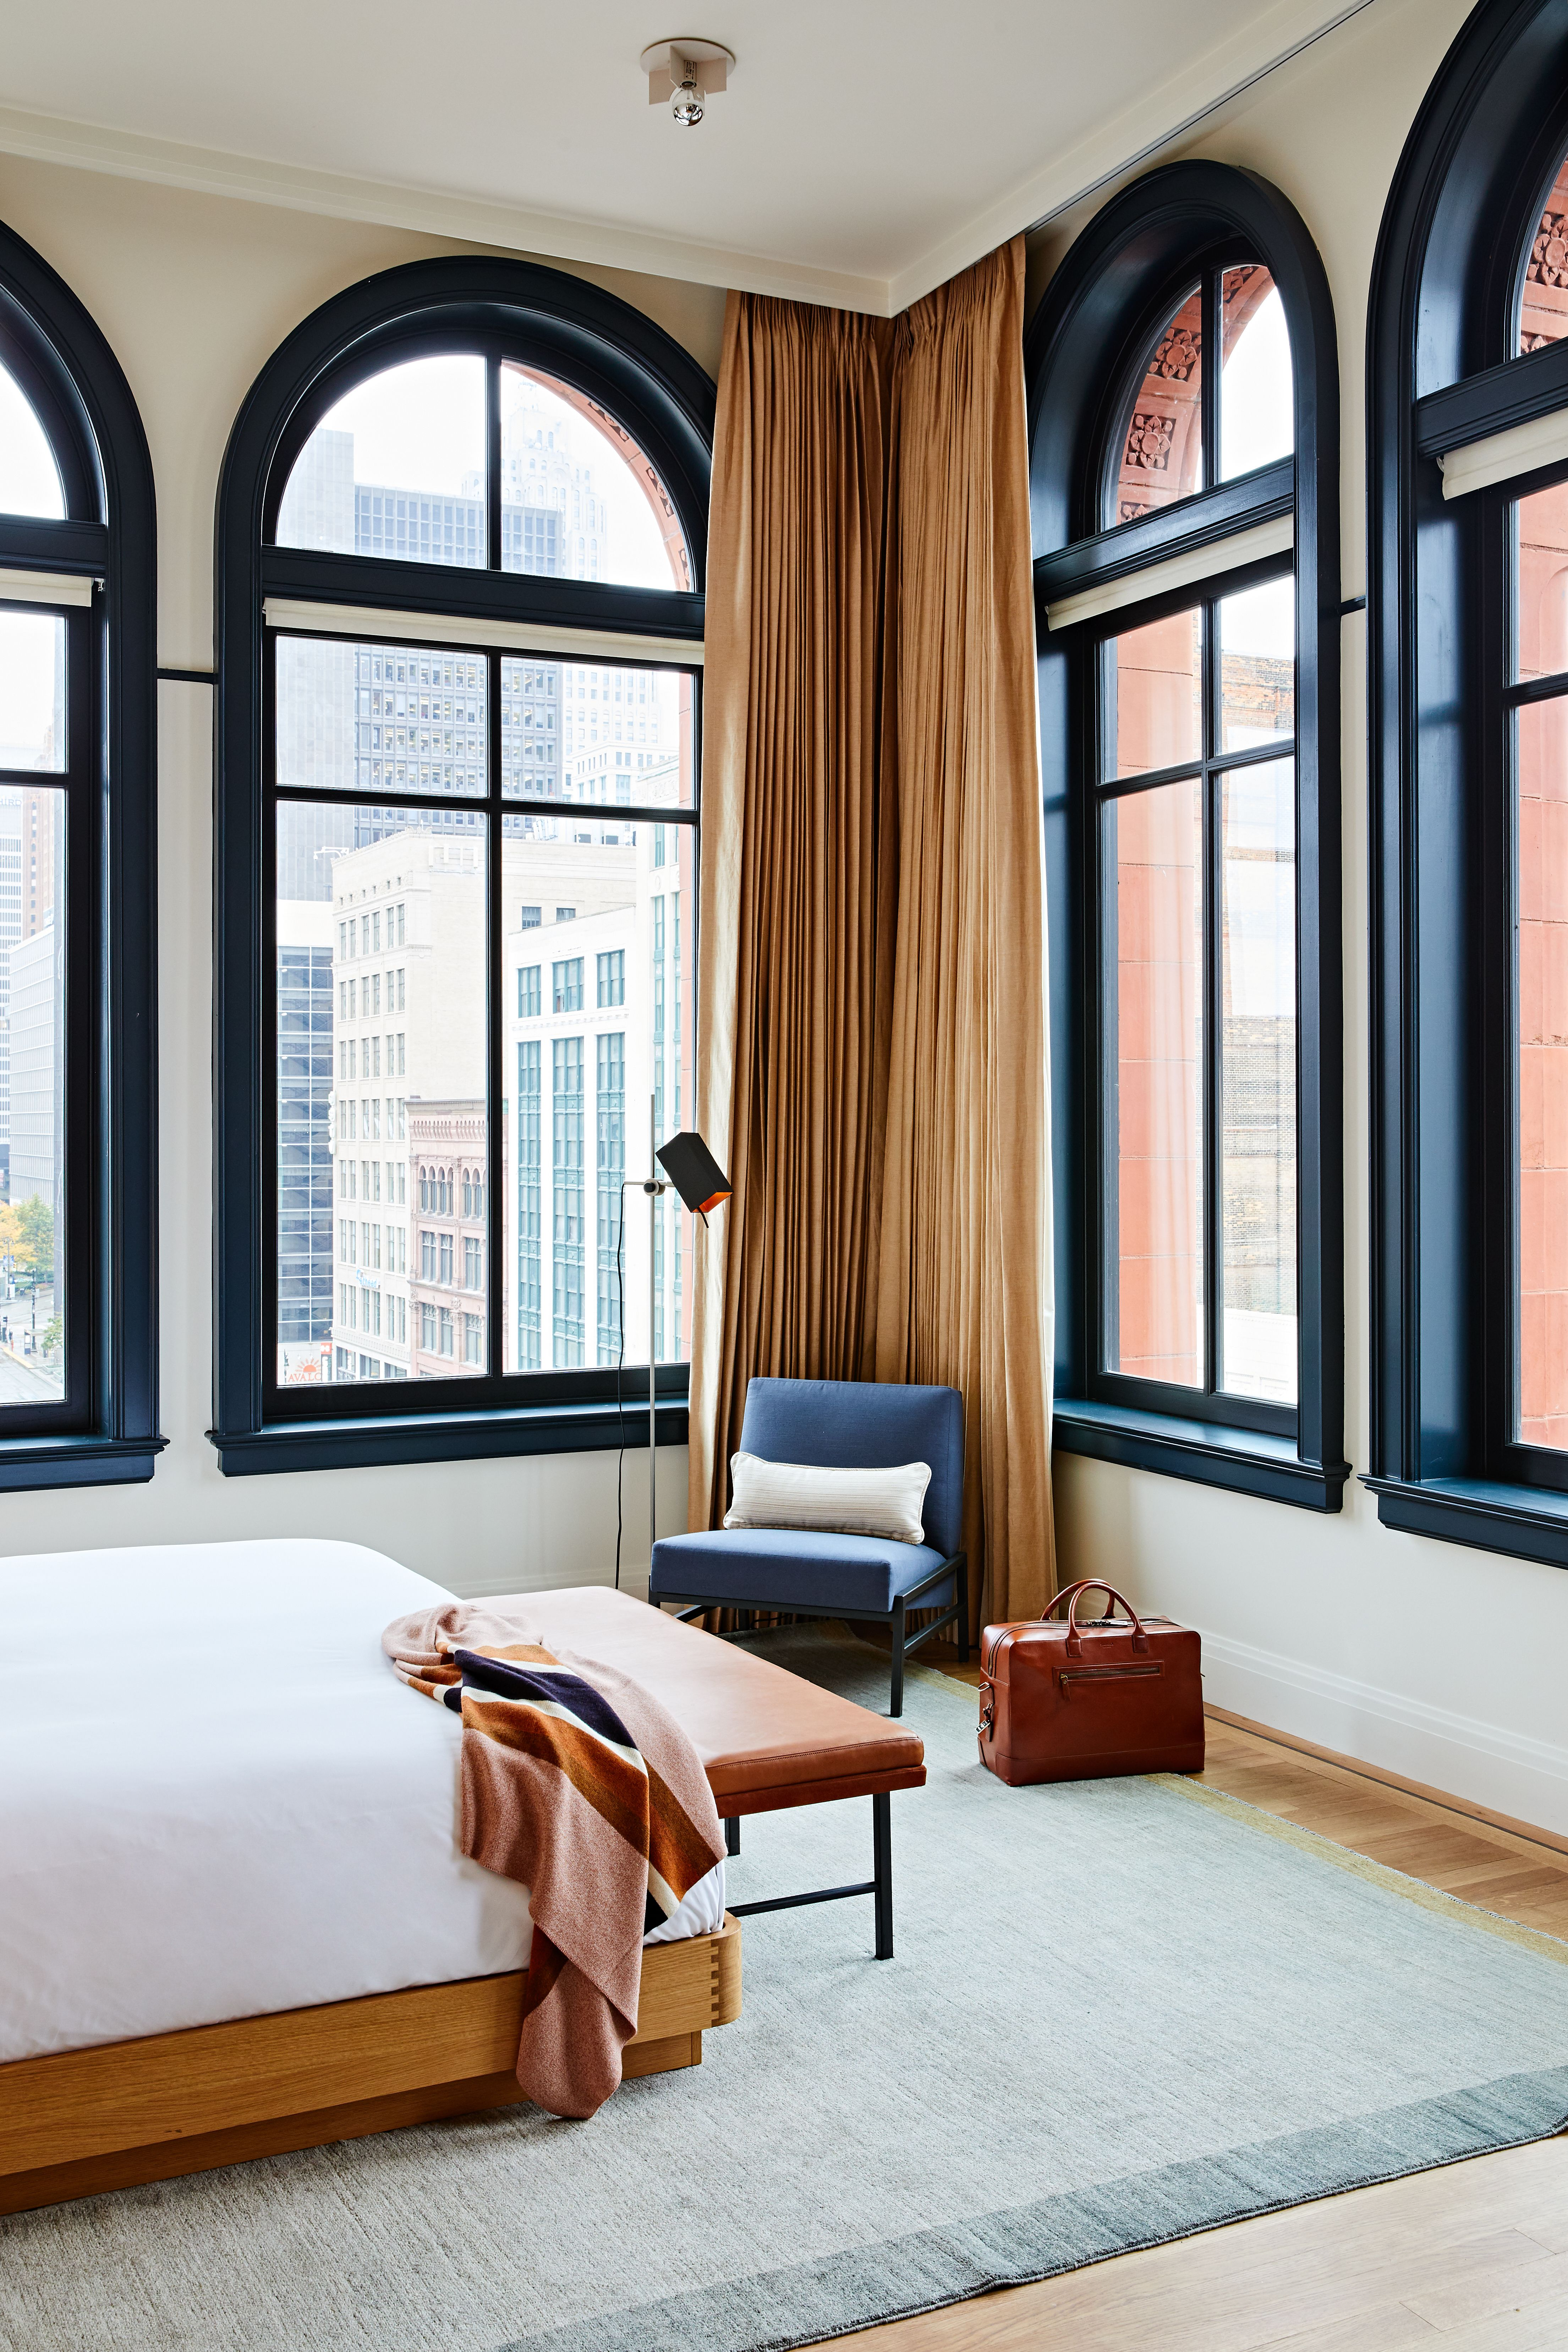 2019's Hottest New Hotel Openings Across the Globe | Looking for the new new spots to host a retreat, getaway with a group or frolic on a friendcation? These hot new hotel openings are pulling out all the stops to ensure that you have a spectacular getaway with your favorite people. | Photo: Nicole Franzen